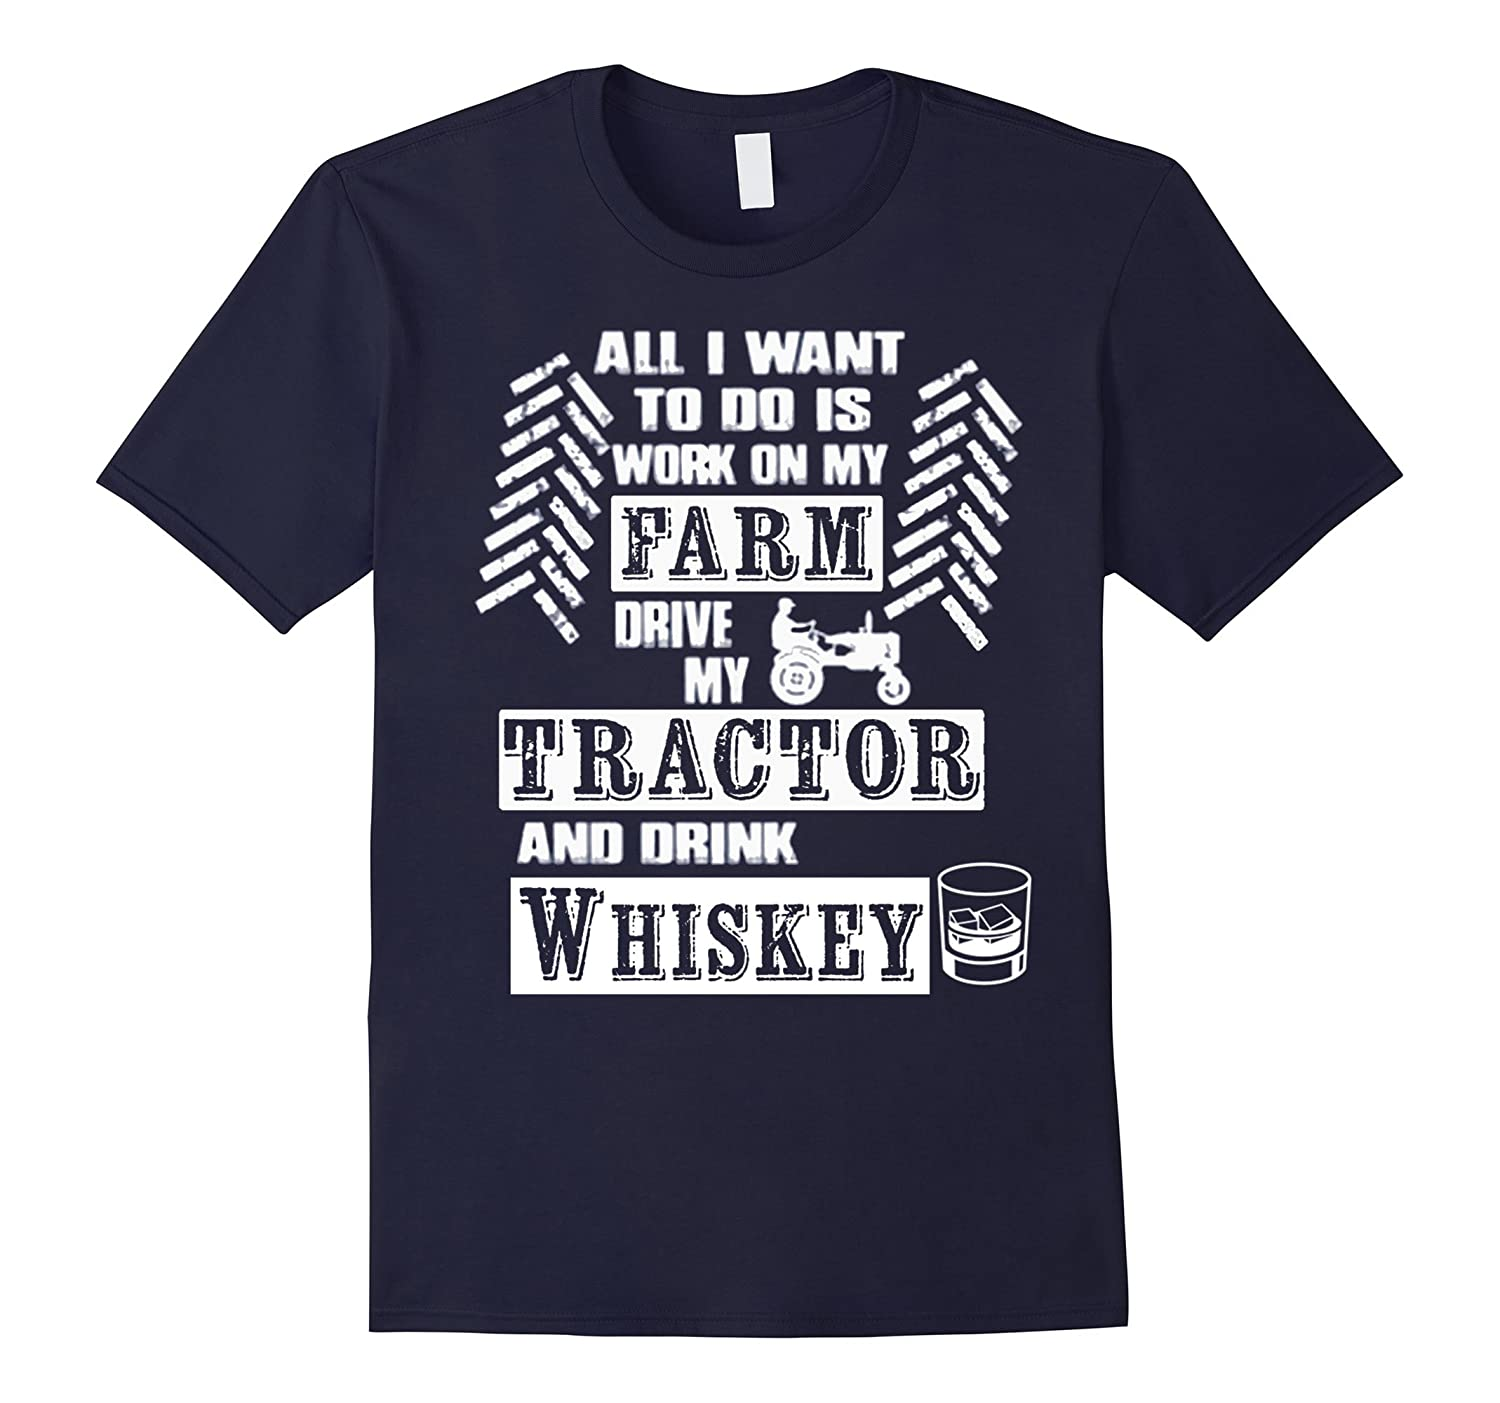 DRIVE MY TRACTOR AND DRINK WHISKEY Tshirt-CL